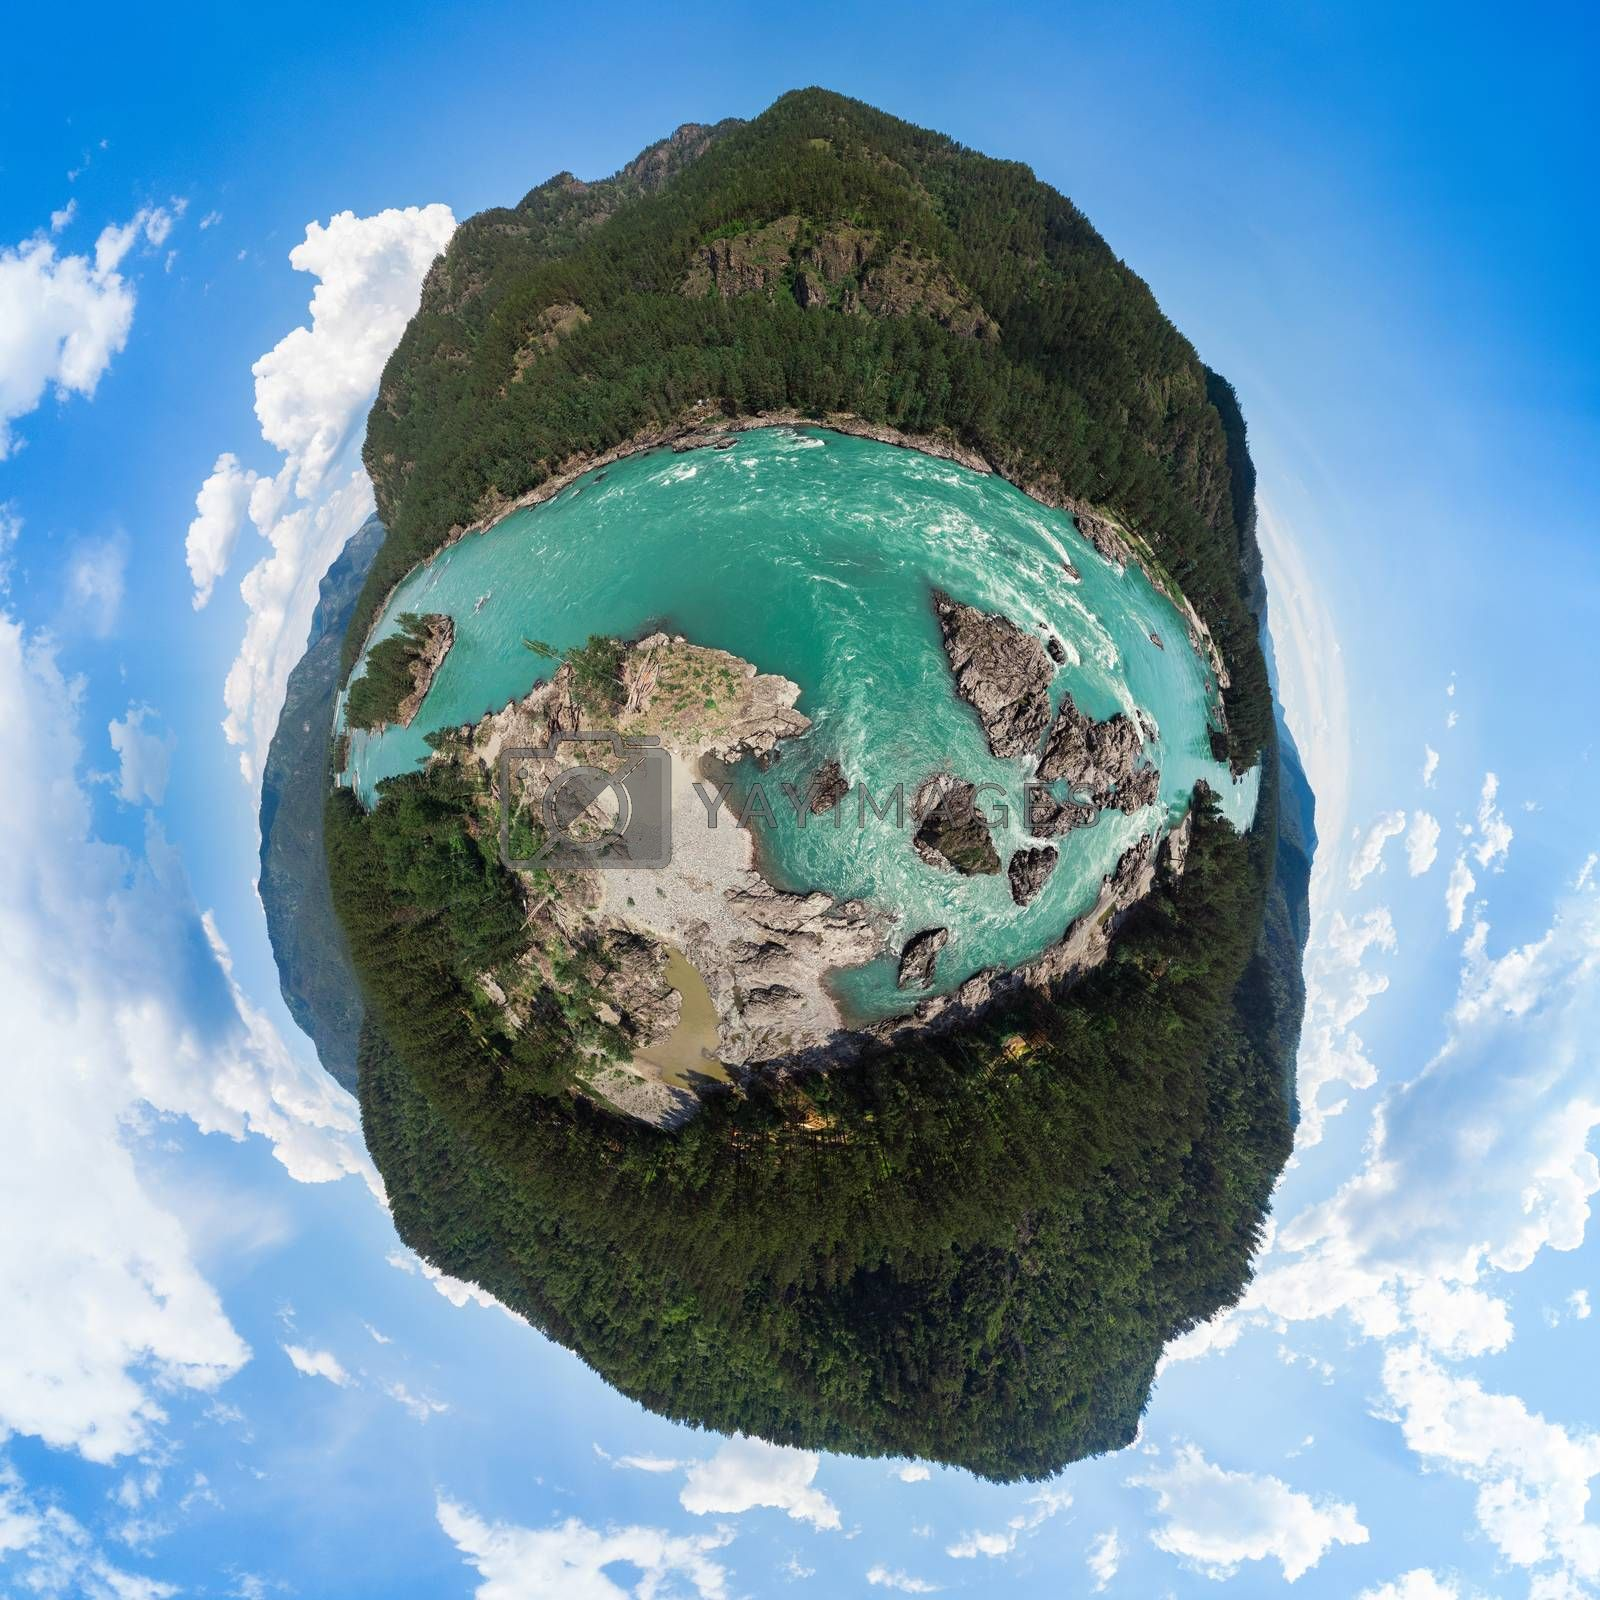 360 spherical panorama of Aerial view of Katun river, in summer morning in Altai mountains, drone shot, Altai Krai, Western Siberia, Russia. Virtual reality content